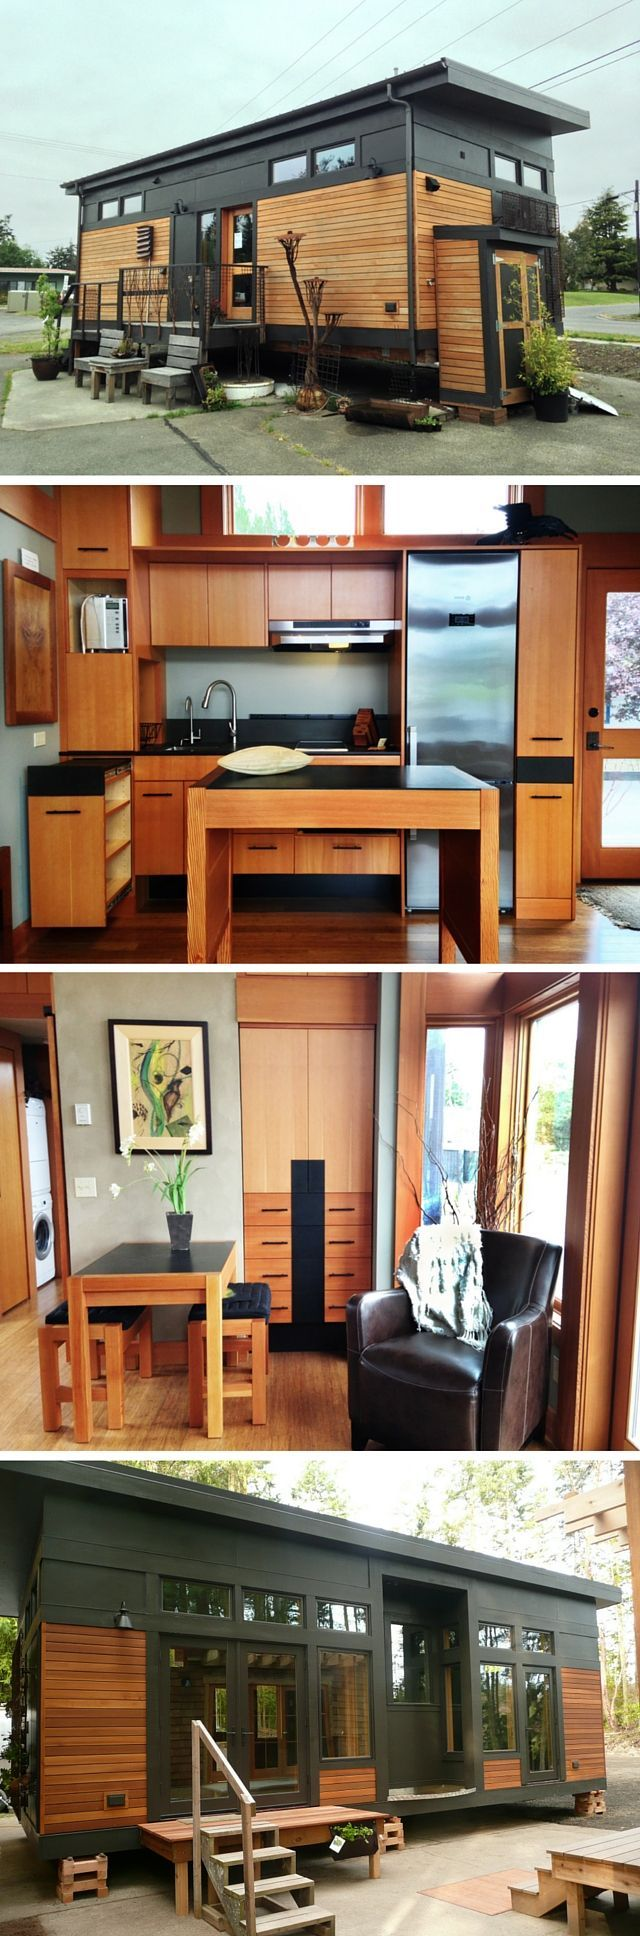 Best Tiny Homes Images On Pinterest Architecture Small Houses And Tiny House Plans